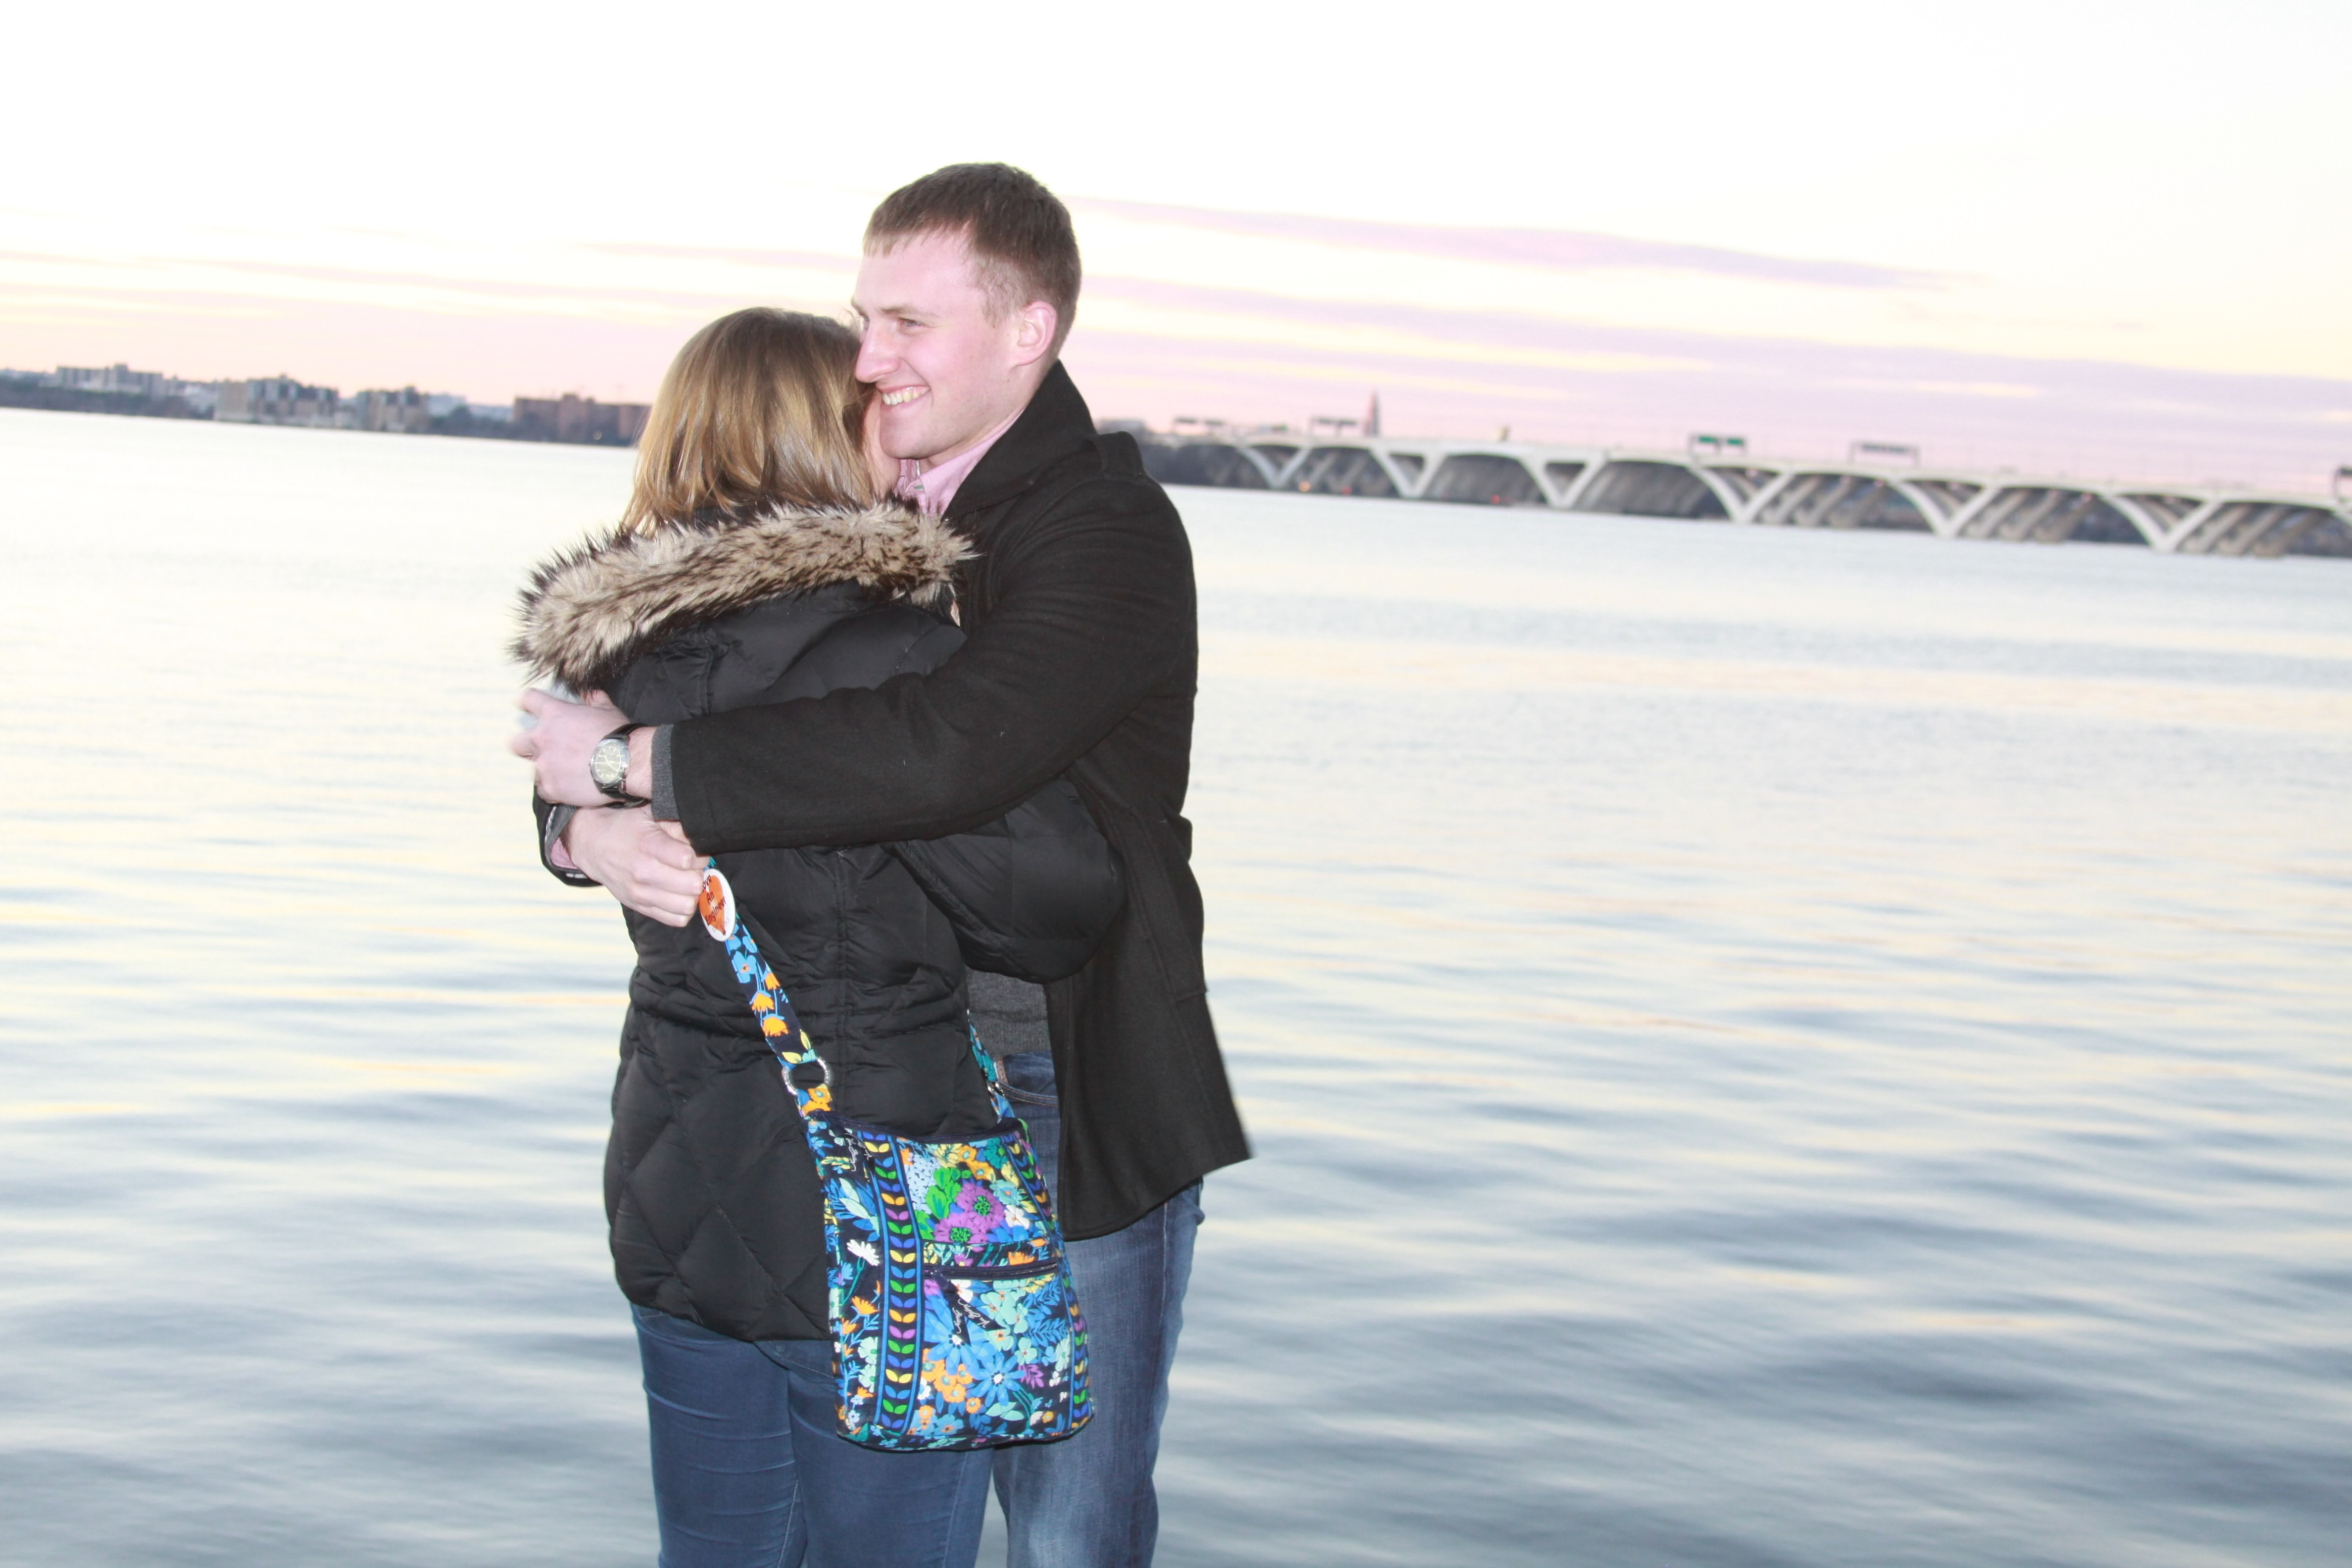 Image 13 of Kaitlin and Logan | Engaged at The National Harbor